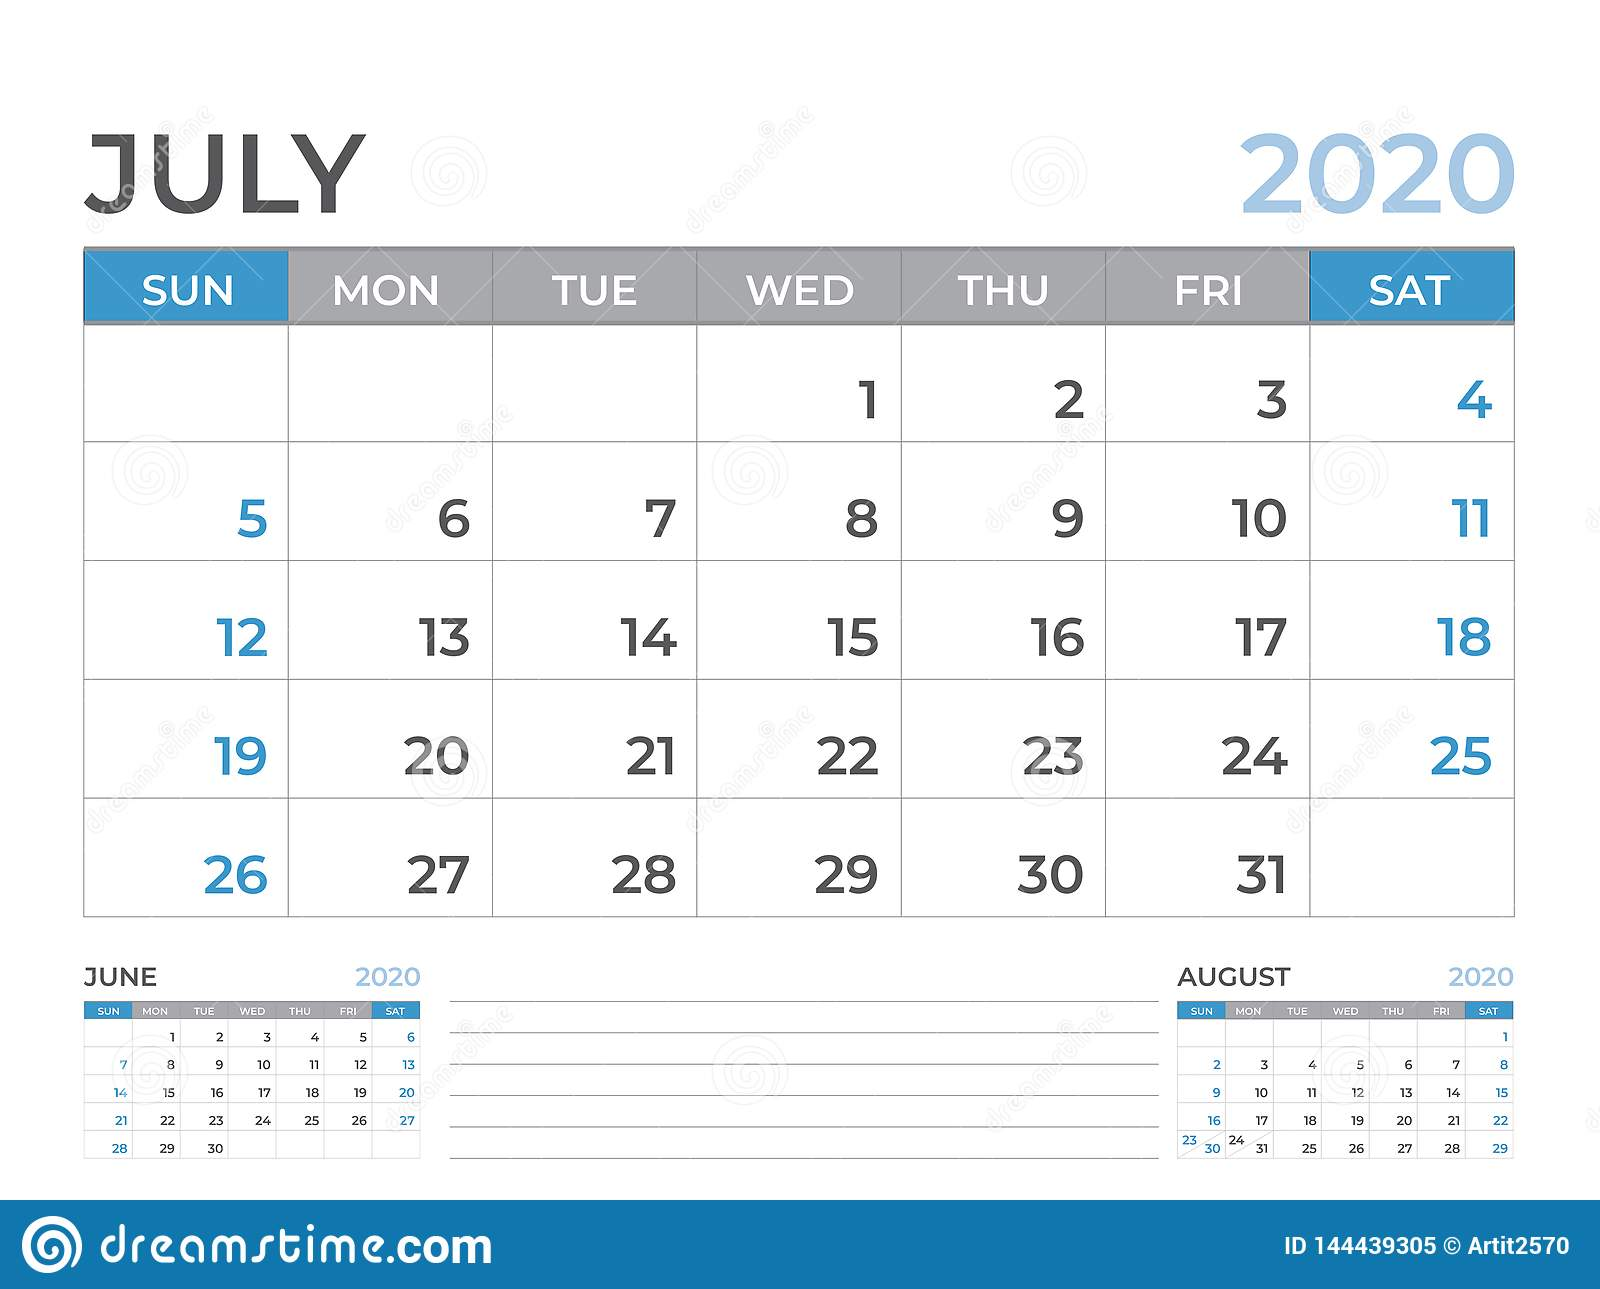 2020 Desk Calendar.June 2020 Calendar Template Desk Calendar Layout Size 8 X 6 Inch